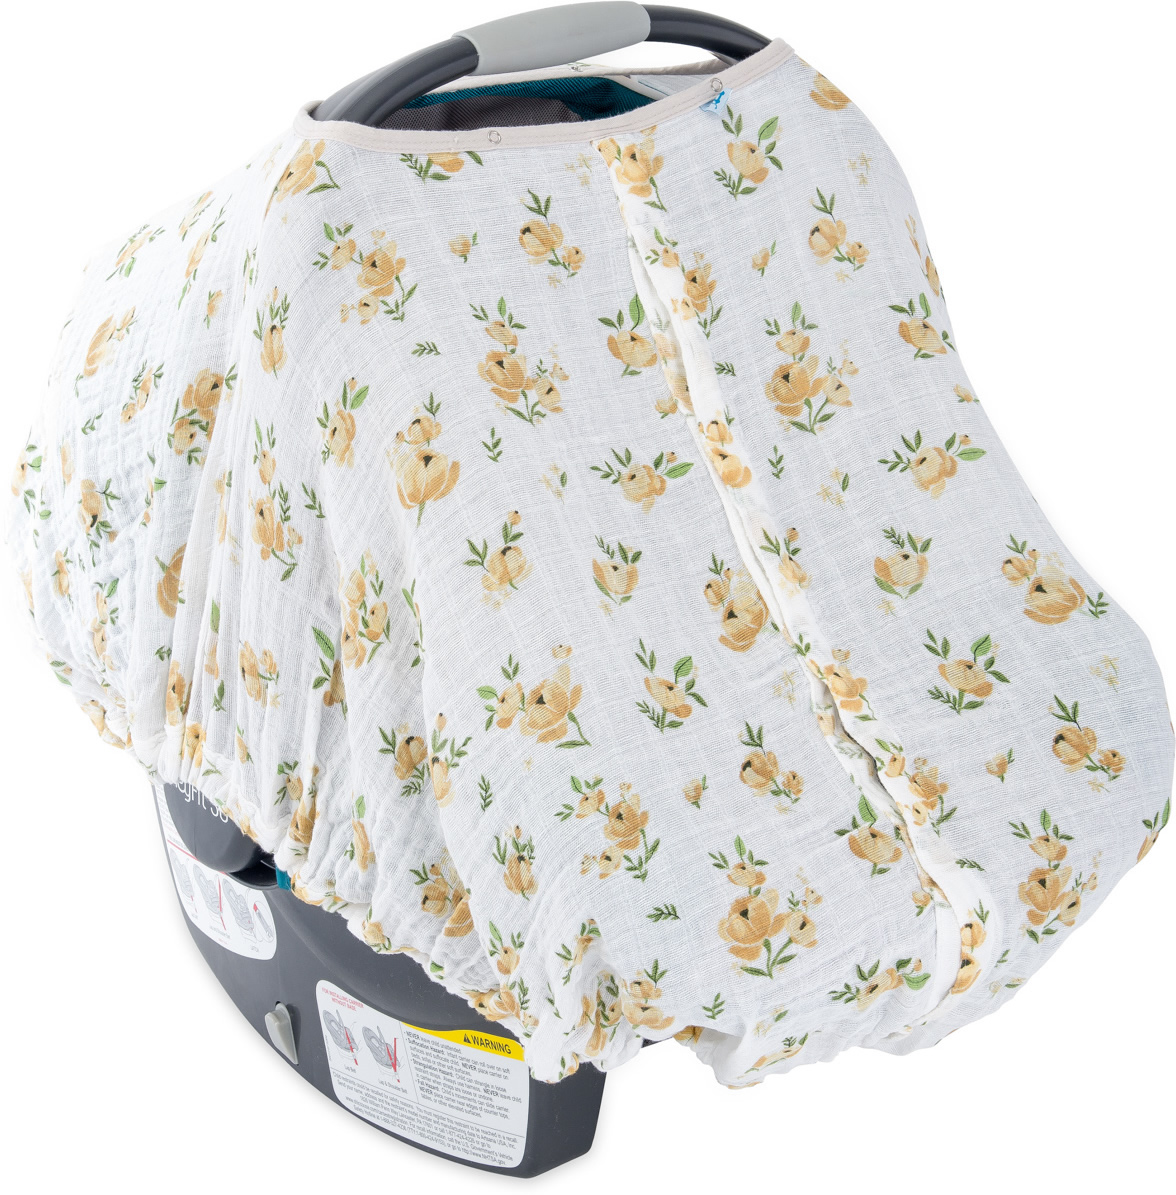 ITEM Little Unicorn Cotton Muslin Car Seat Canopy Family